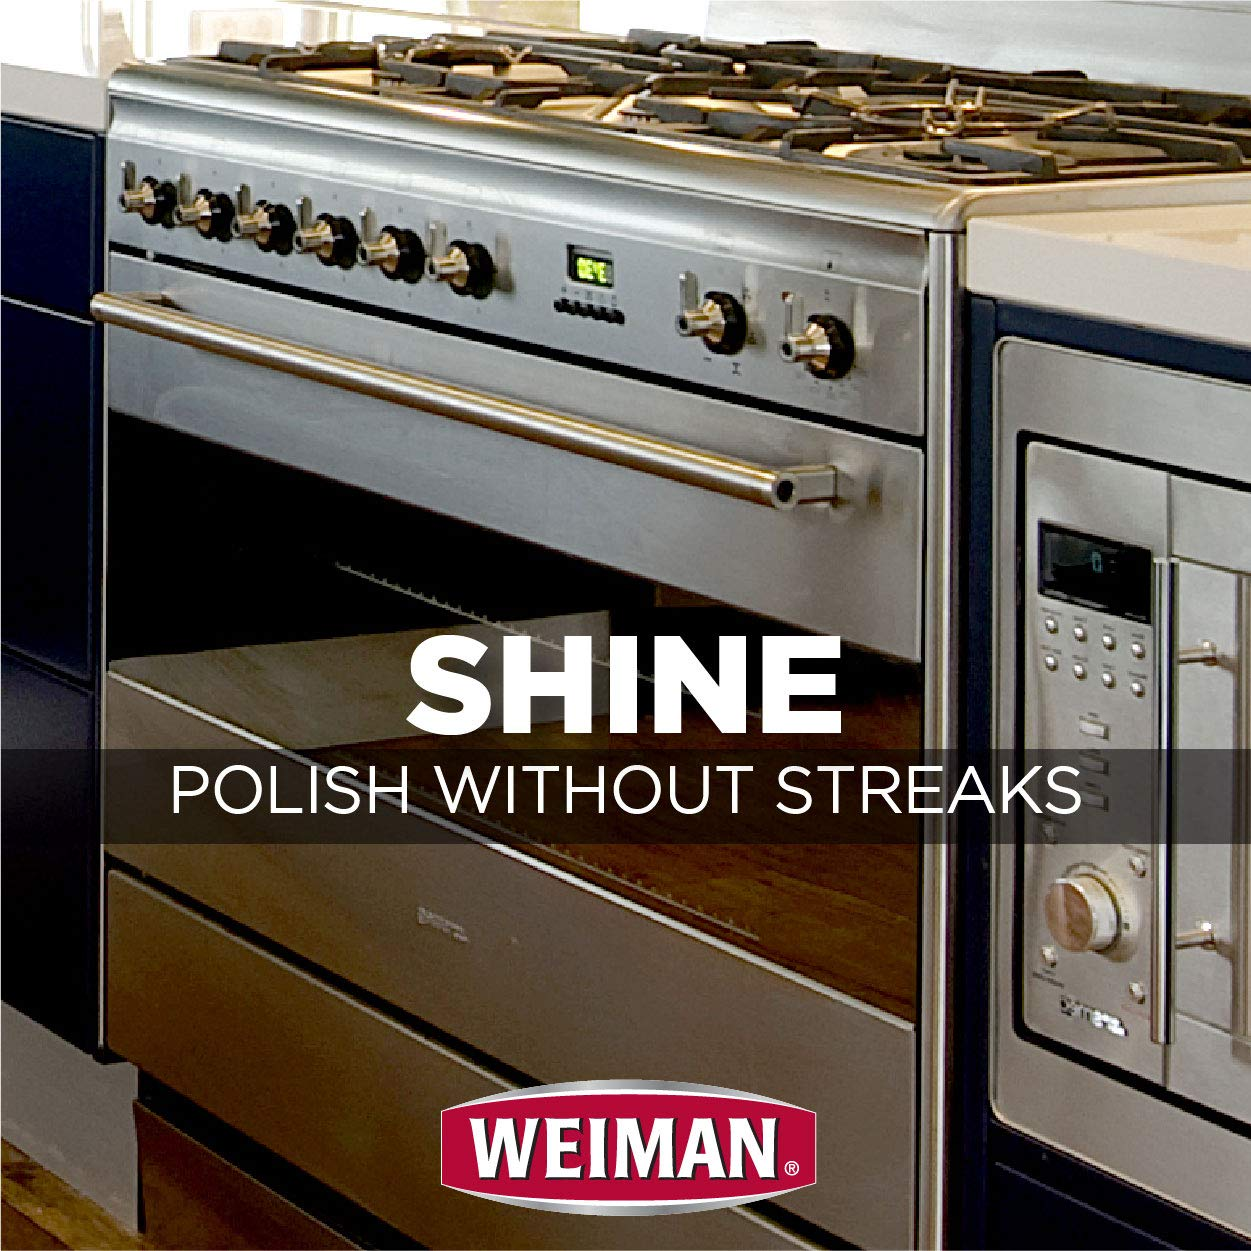 Weiman Stainless Steel Cleaner & Polish 22 fl oz - 6 pack by Weiman (Image #7)